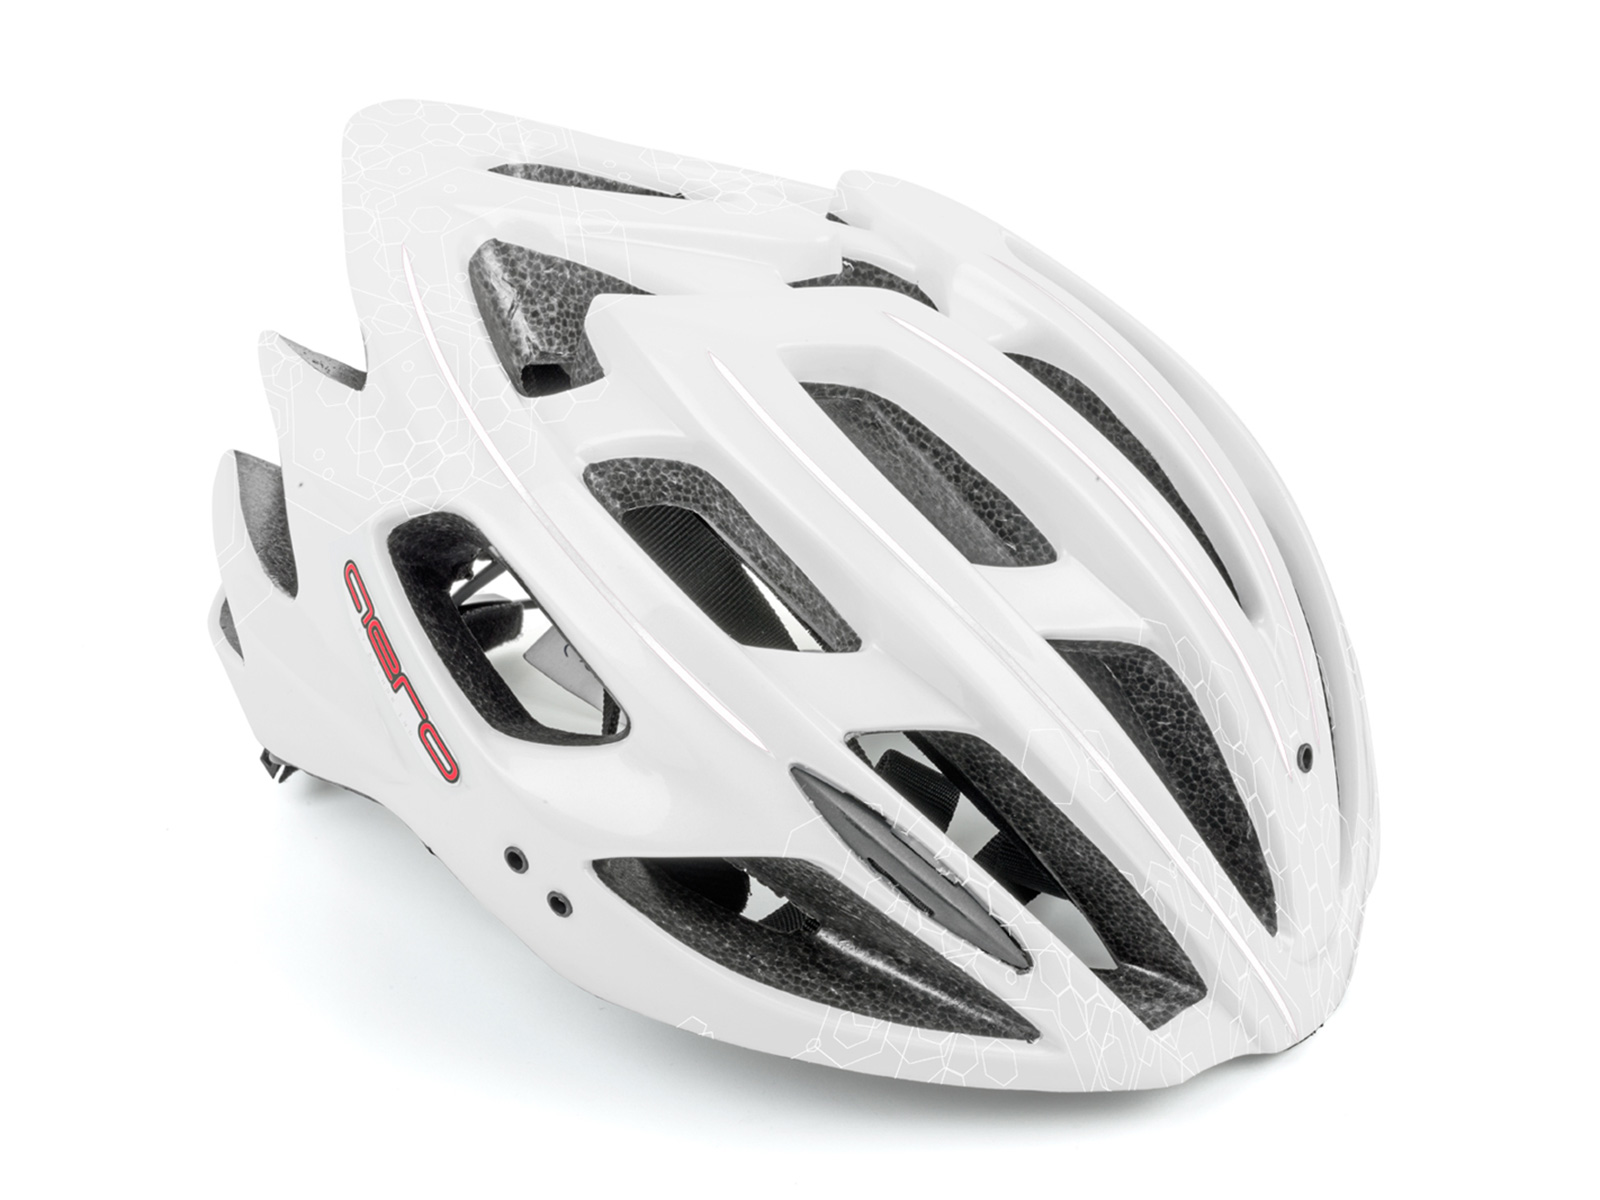 Шлем AERO InMold X7 165 WHITE/RED р-р 52-58см AUTHOR